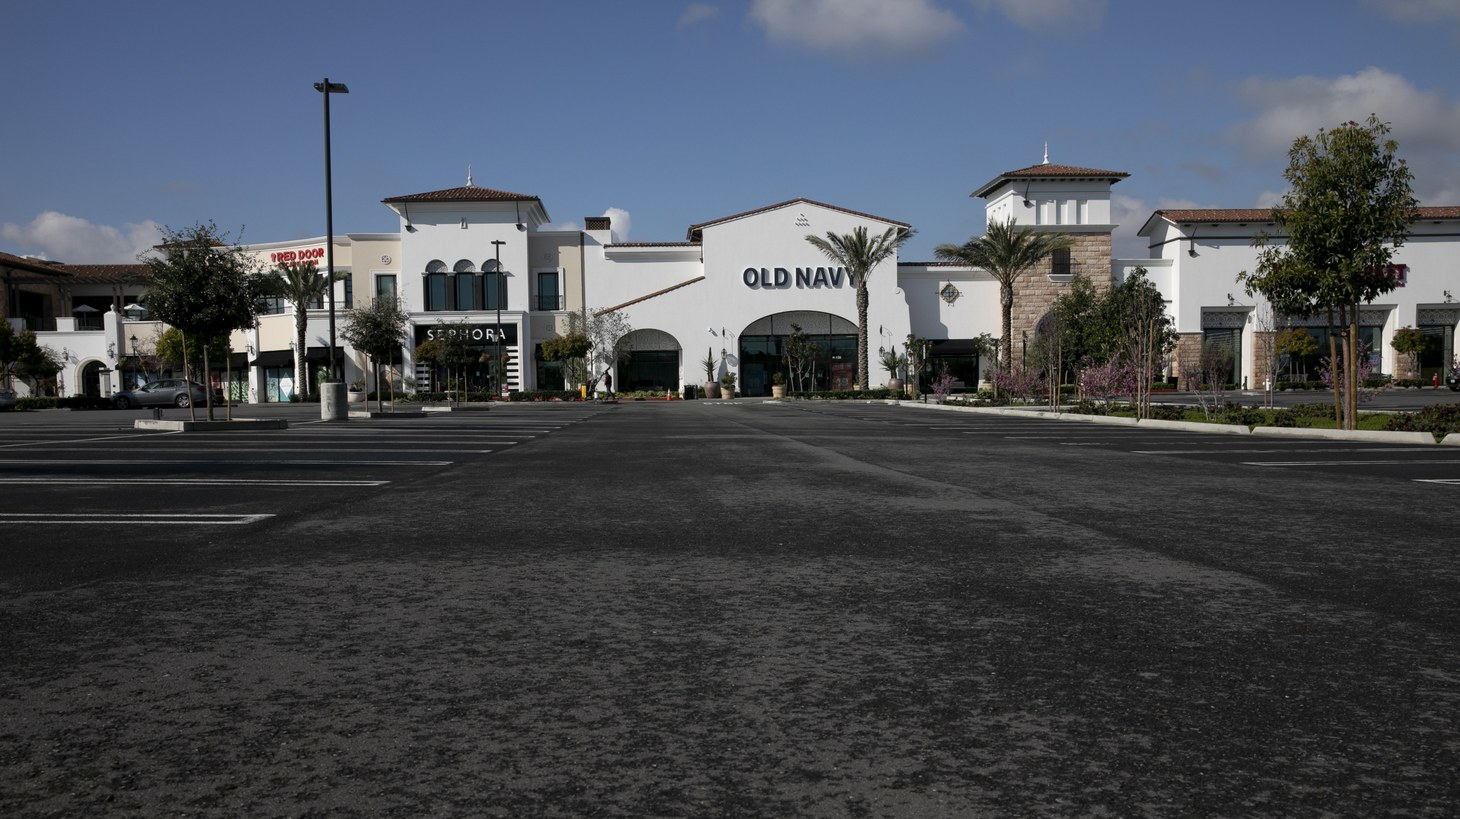 An empty parking lot in front of Old Navy at The Veranda shopping center in Concord on March 19, 2020. One third of the center's businesses have been forced to close temporarily due to the shelter in place order in Contra Costa and surrounding counties.